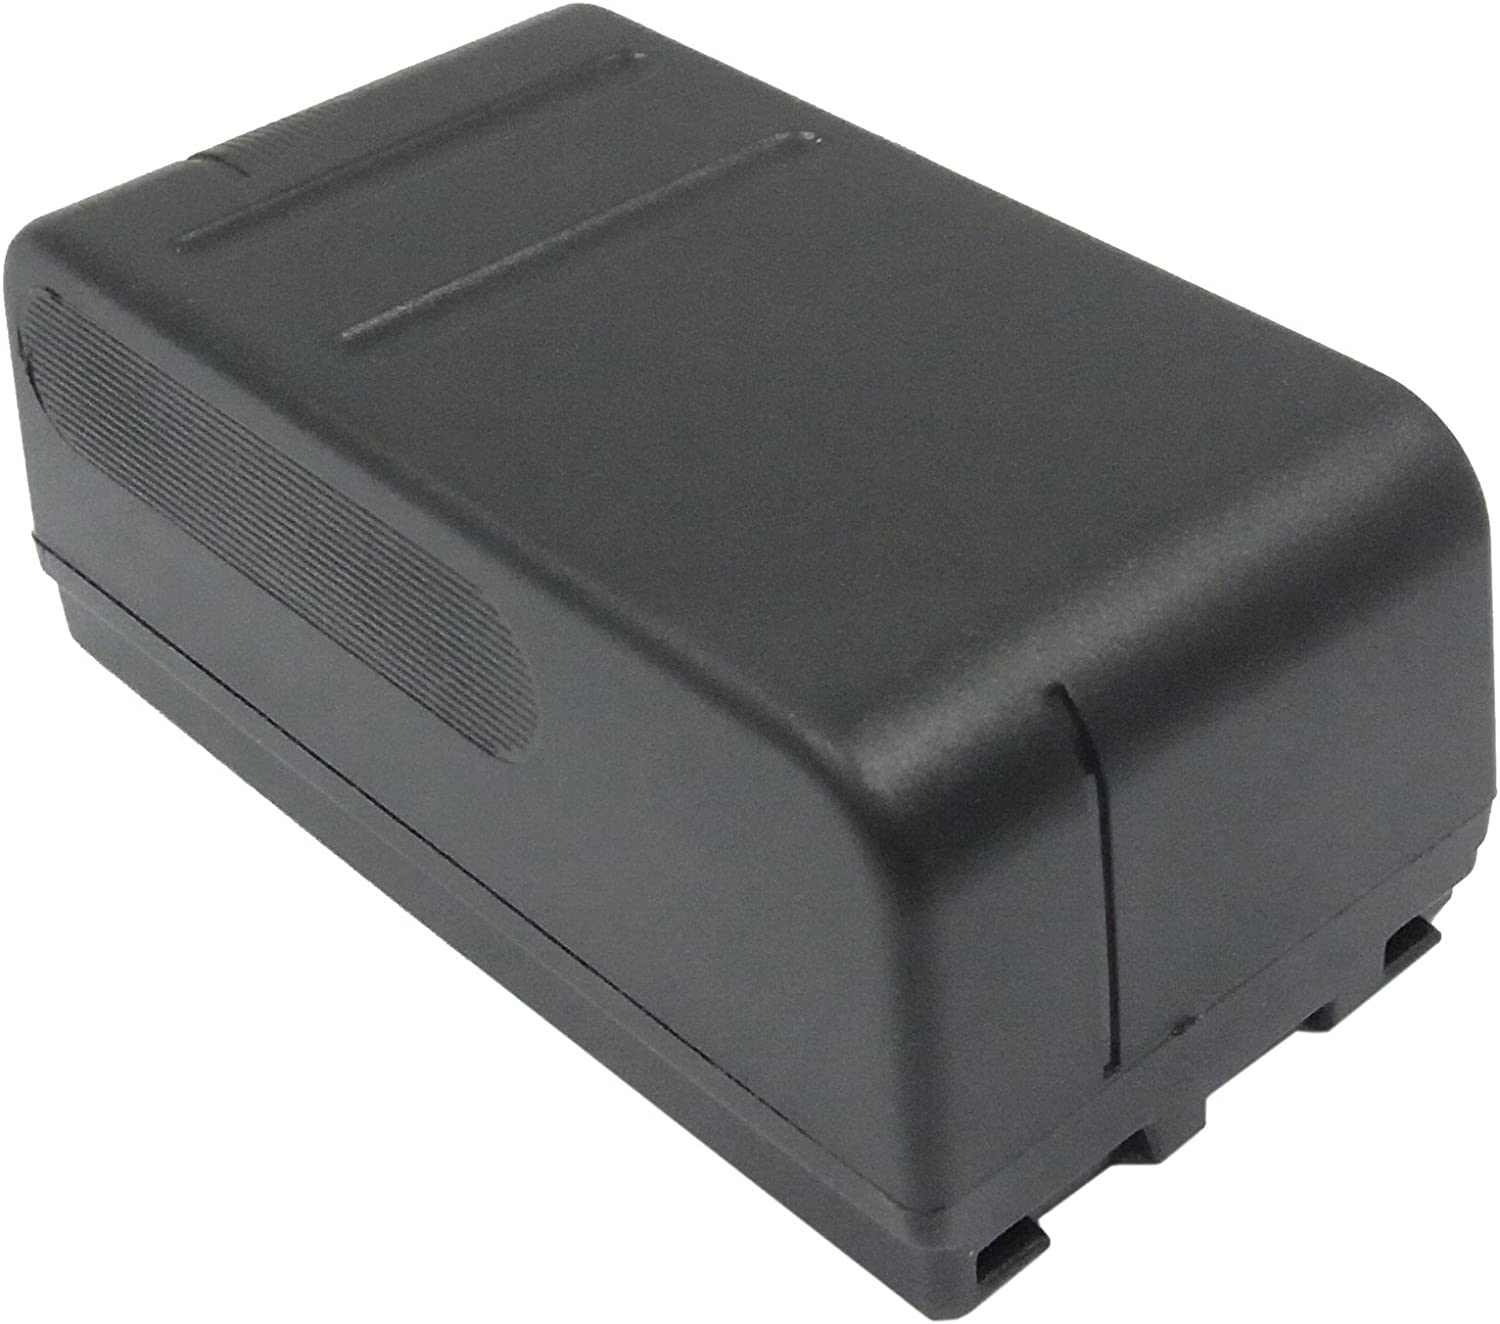 BT70 CCD-20061 NP-68 CCD-F280, NP-98 Replacement Battery for Sony 10D NP-77 20K NP-66 CCD-EB55 CCD-F250 CCD-35 CCD-380 CCD-F1330 CCD-850 2006I NP-55 CCD-F201 CCD-390 CCD-400 NP-33